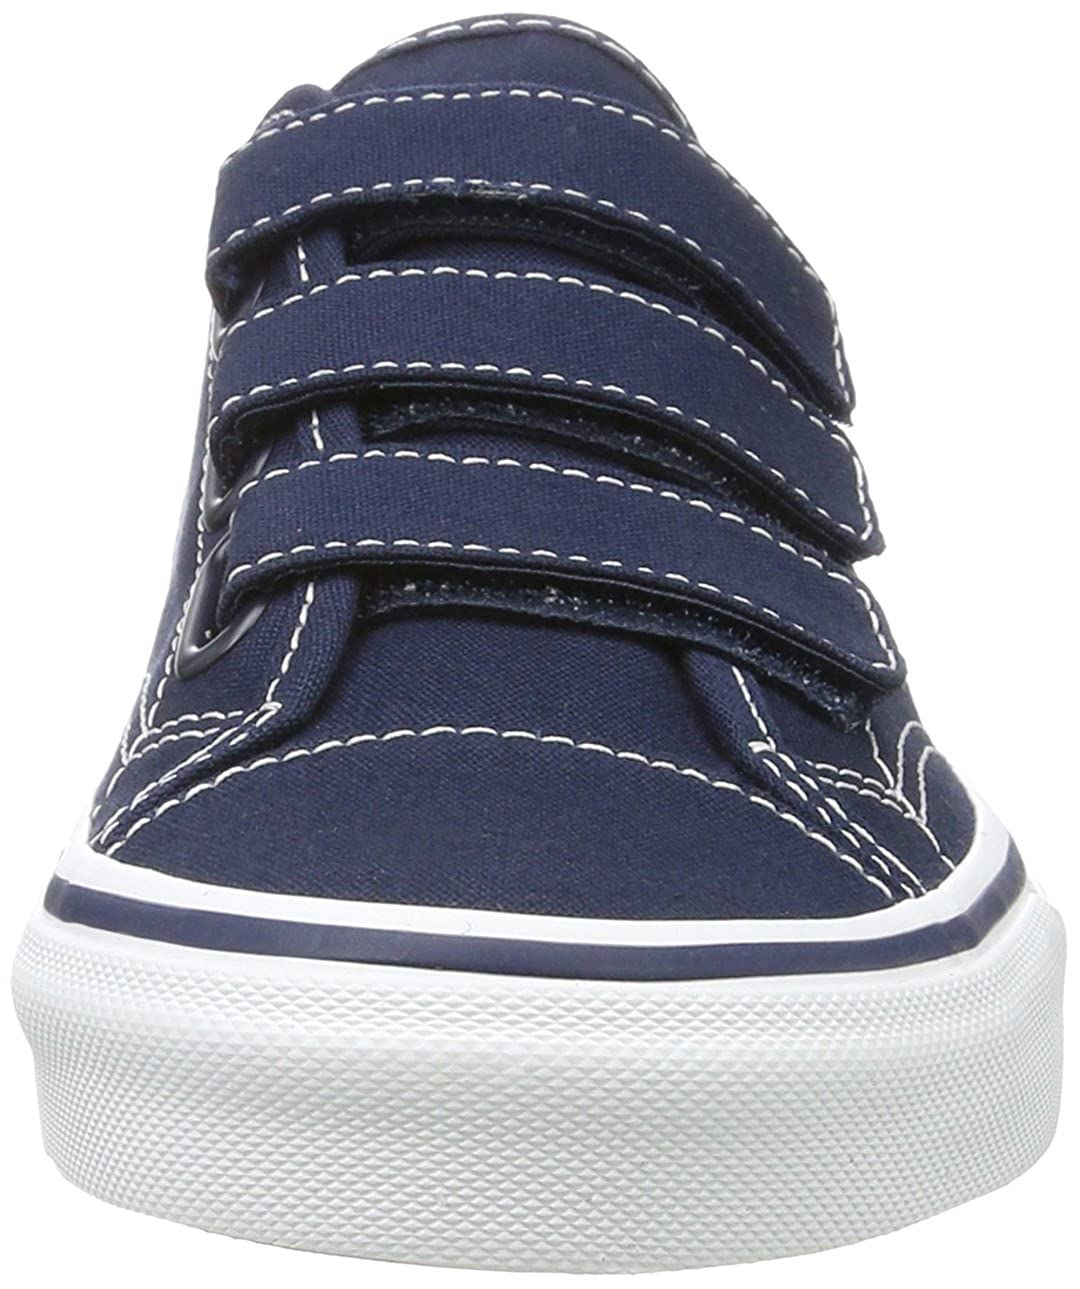 23c74d8fdb Vans Unisex Style 23 V Sneakers  Buy Online at Low Prices in India -  Amazon.in